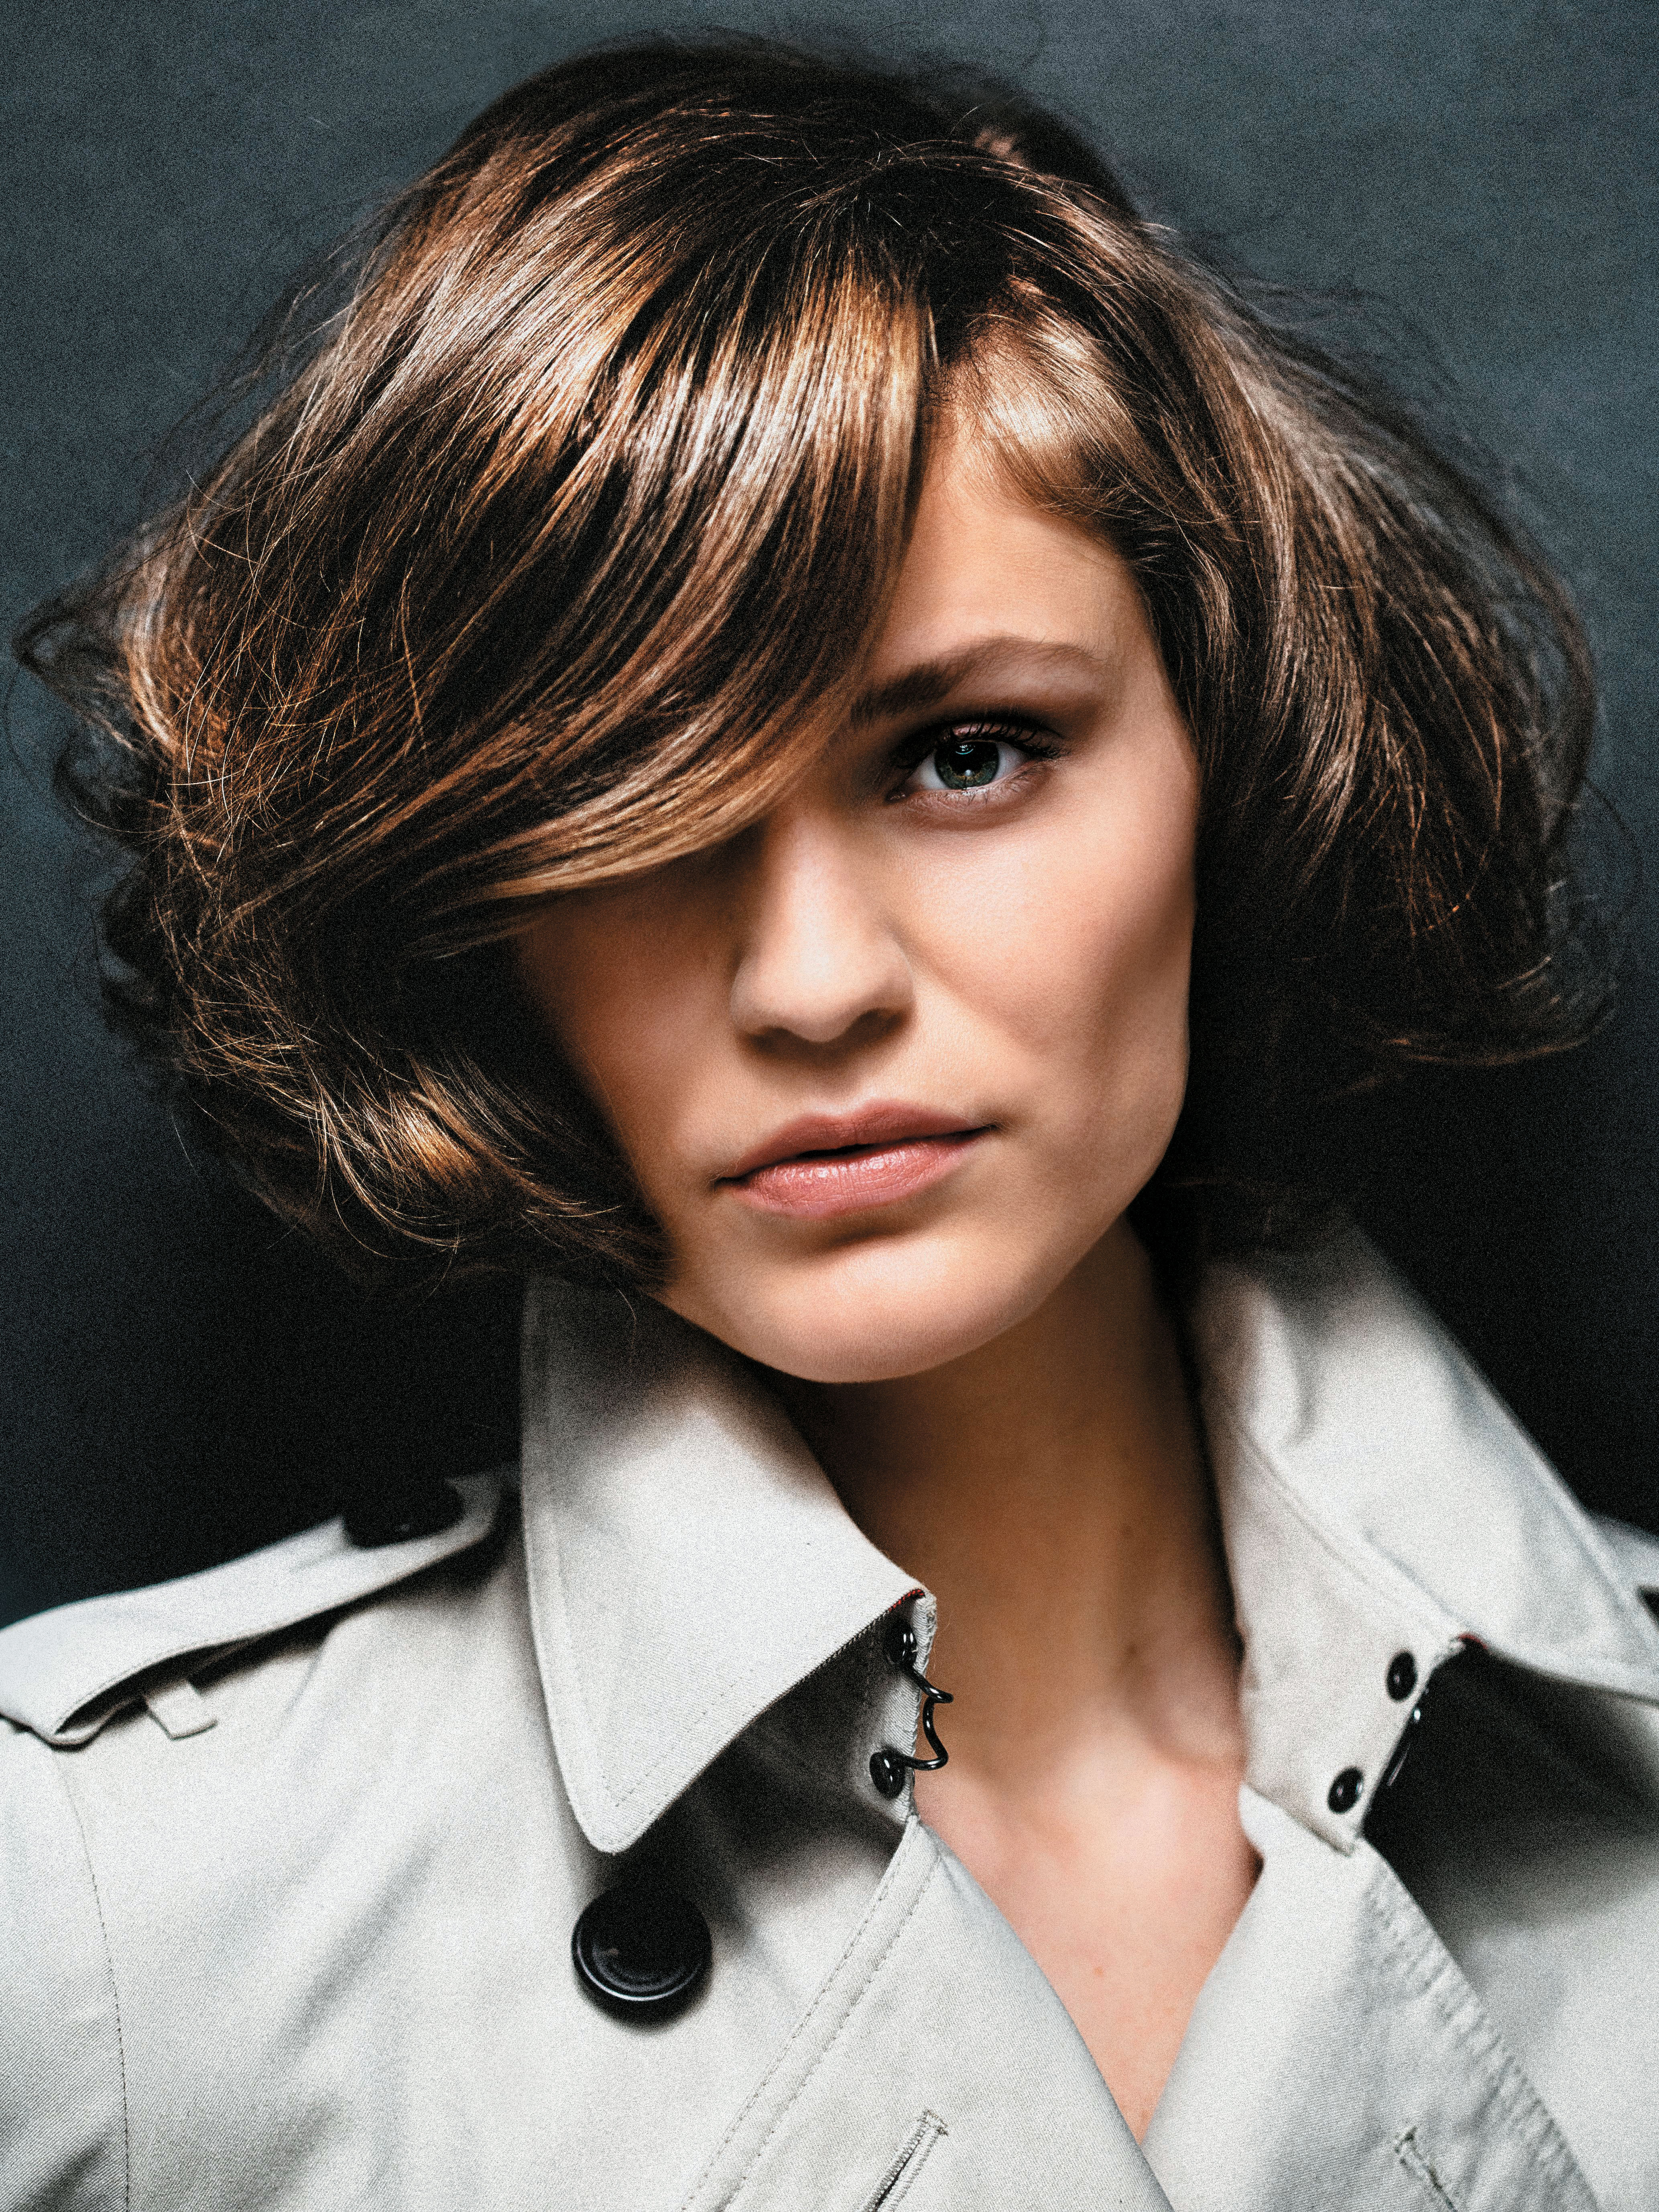 A glamorous, soft bob becomes more mysterious when a slightly wavy lock of hair is allowed to fall nonchalantly over one eye.